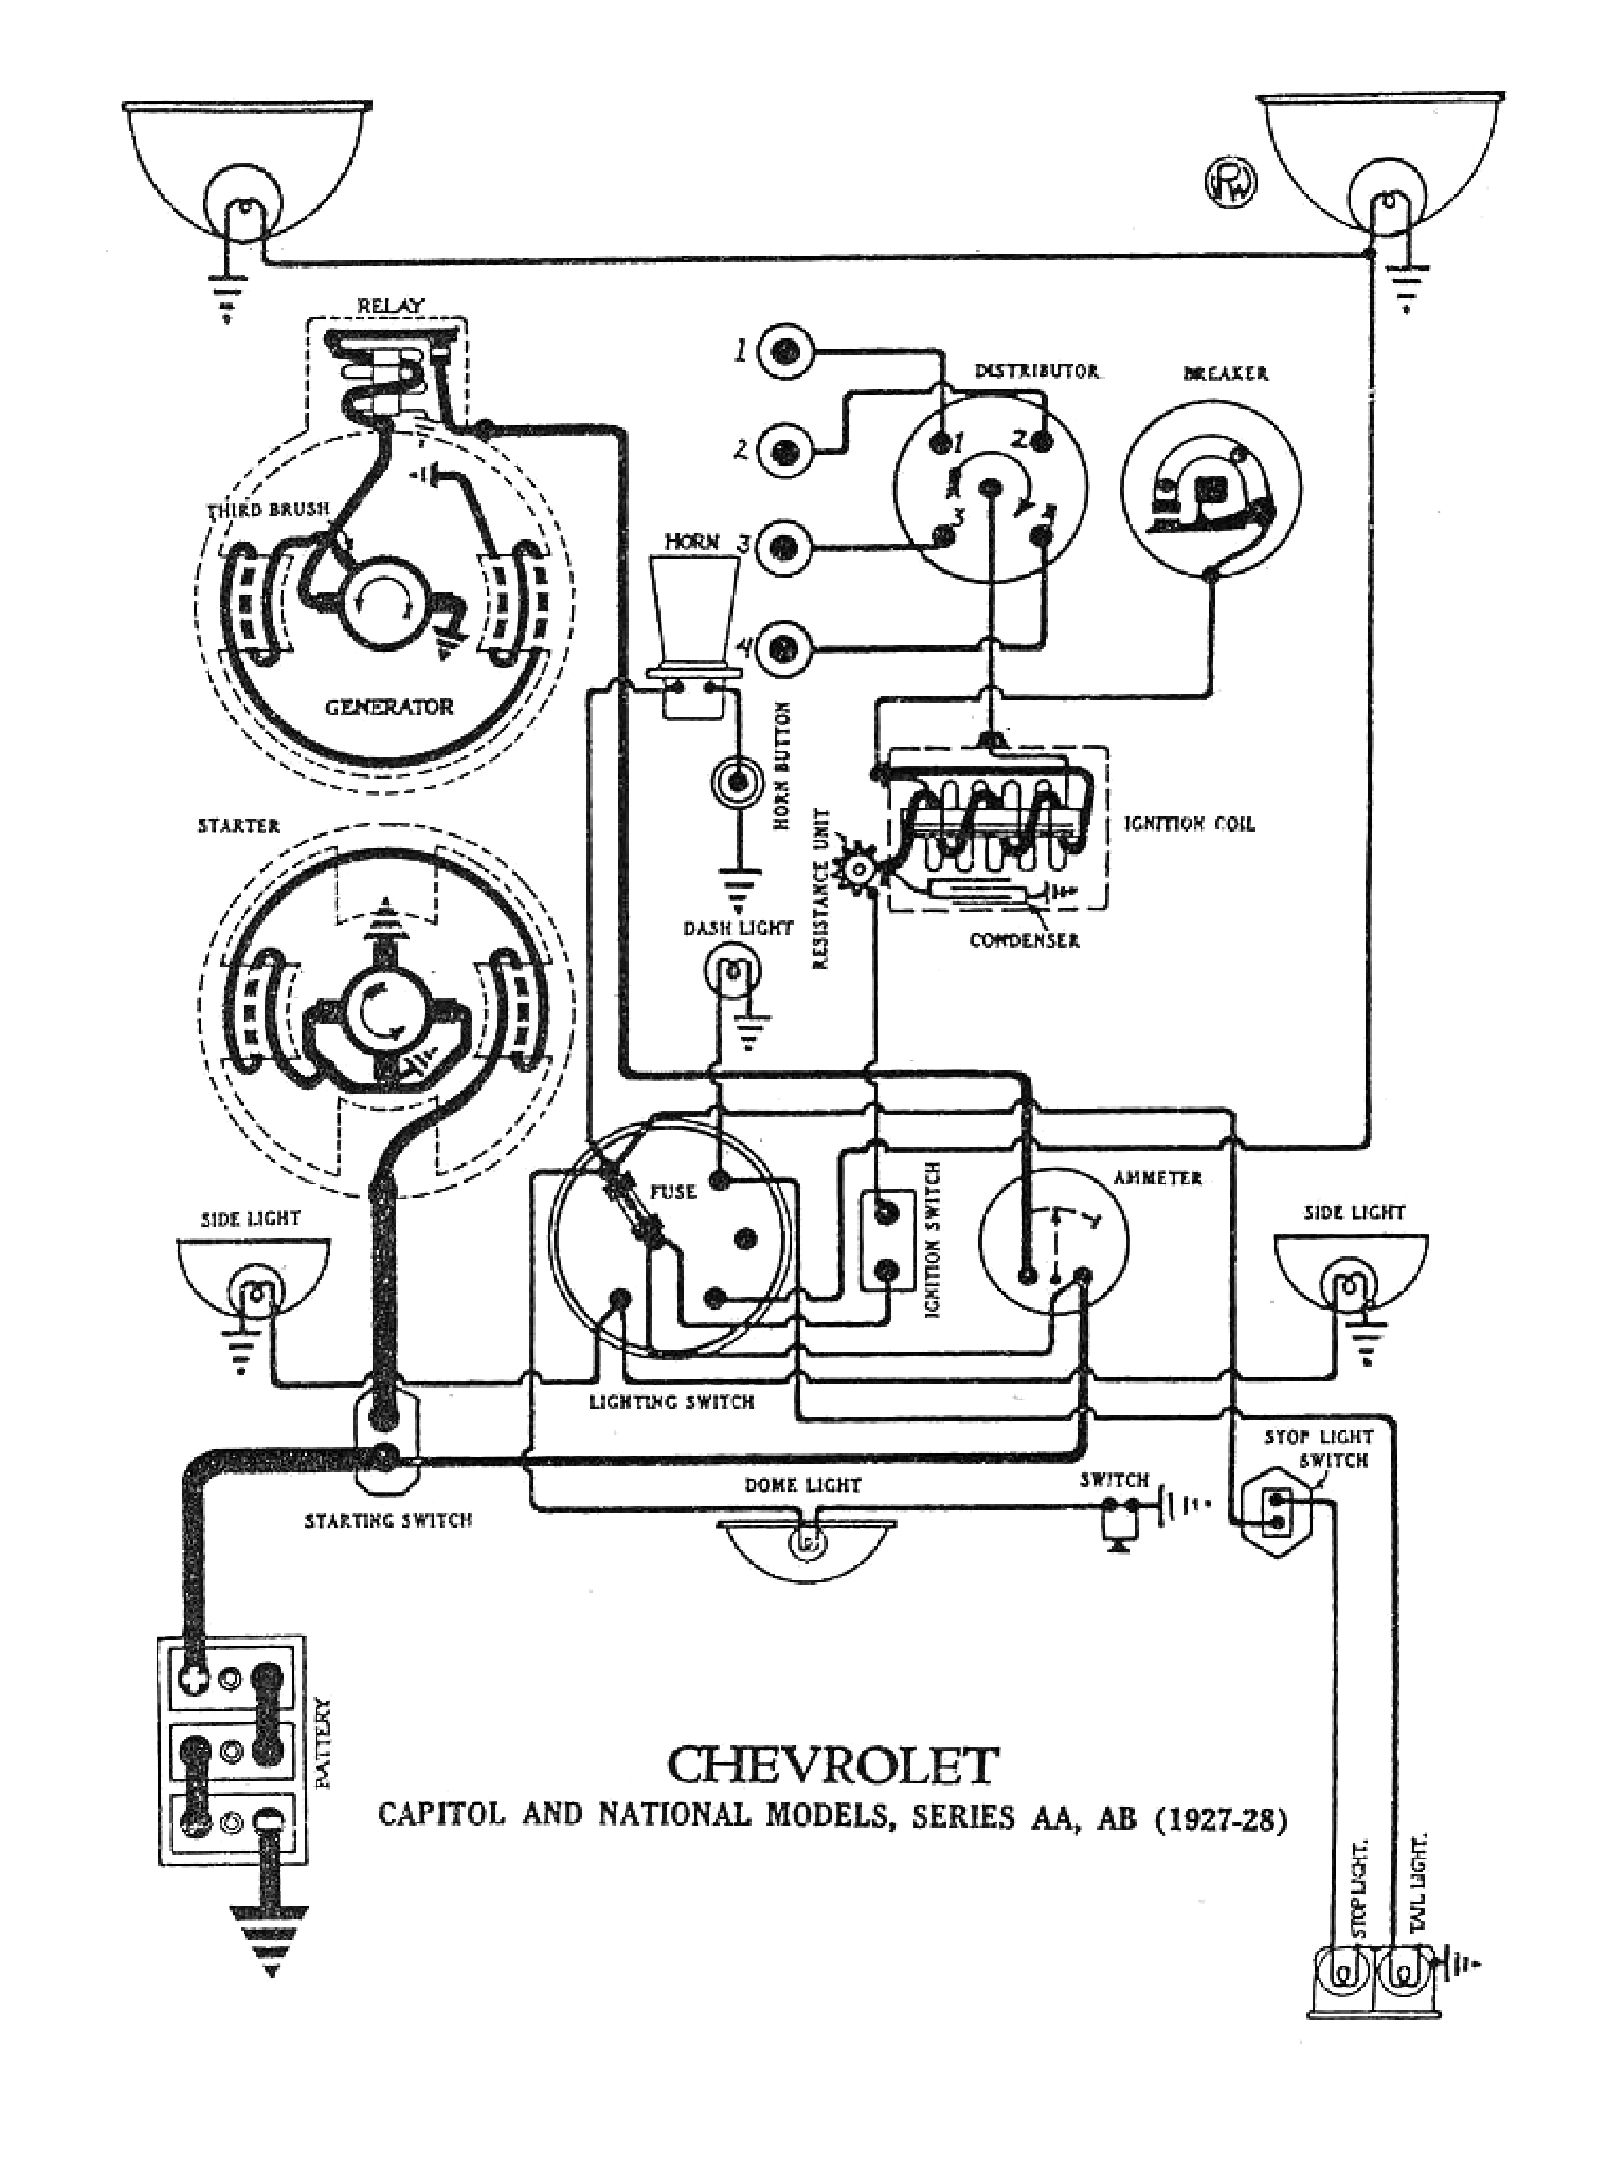 1933 Chevy Pickup Wiring Diagram Schematic Reinvent Your For 1992 Silverado Diagrams Rh Oldcarmanualproject Com 2006 Schematics